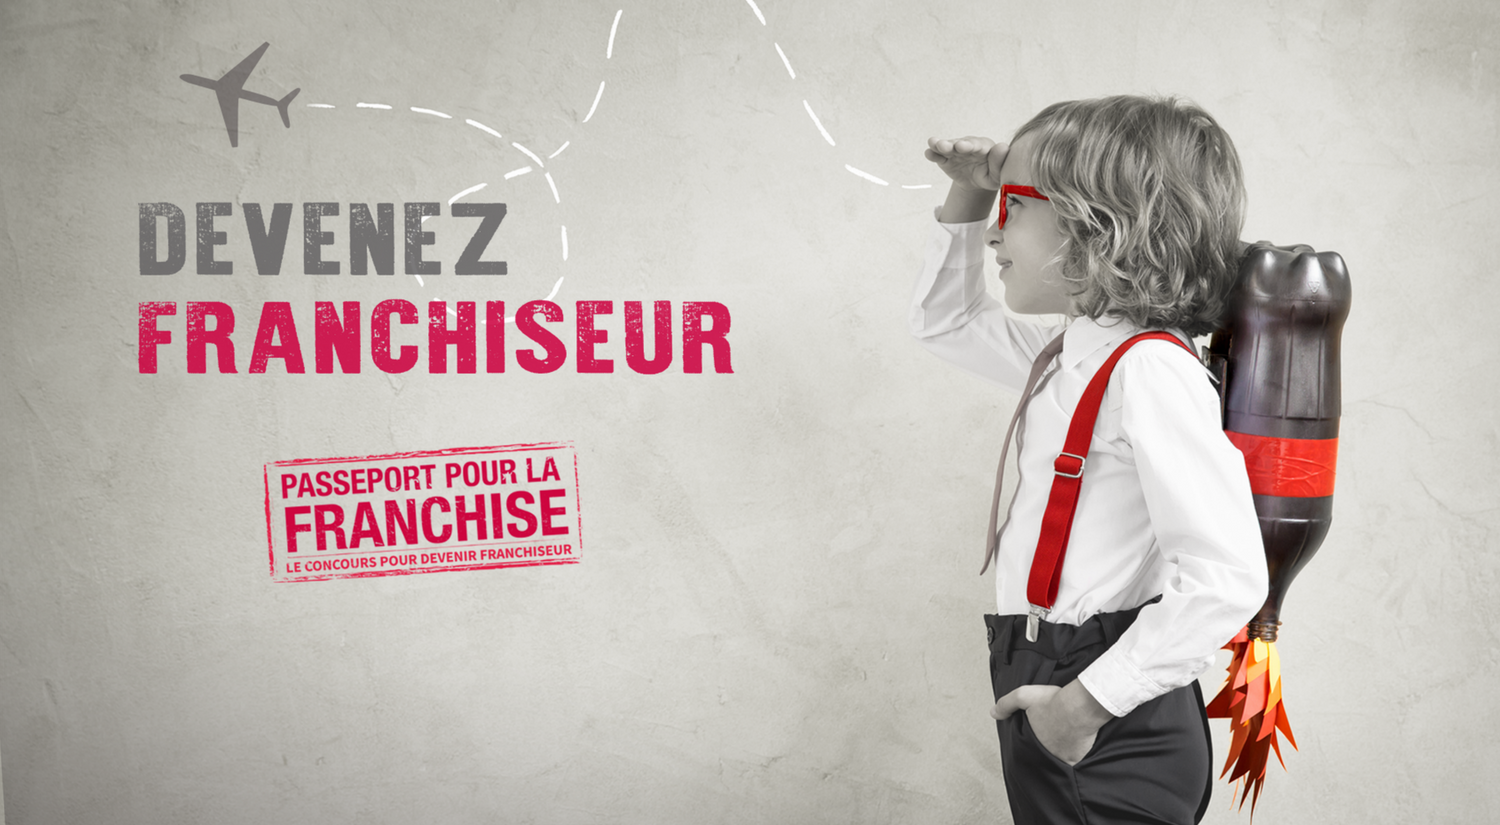 Devenir-franchiseur-passeport-franchise-2018